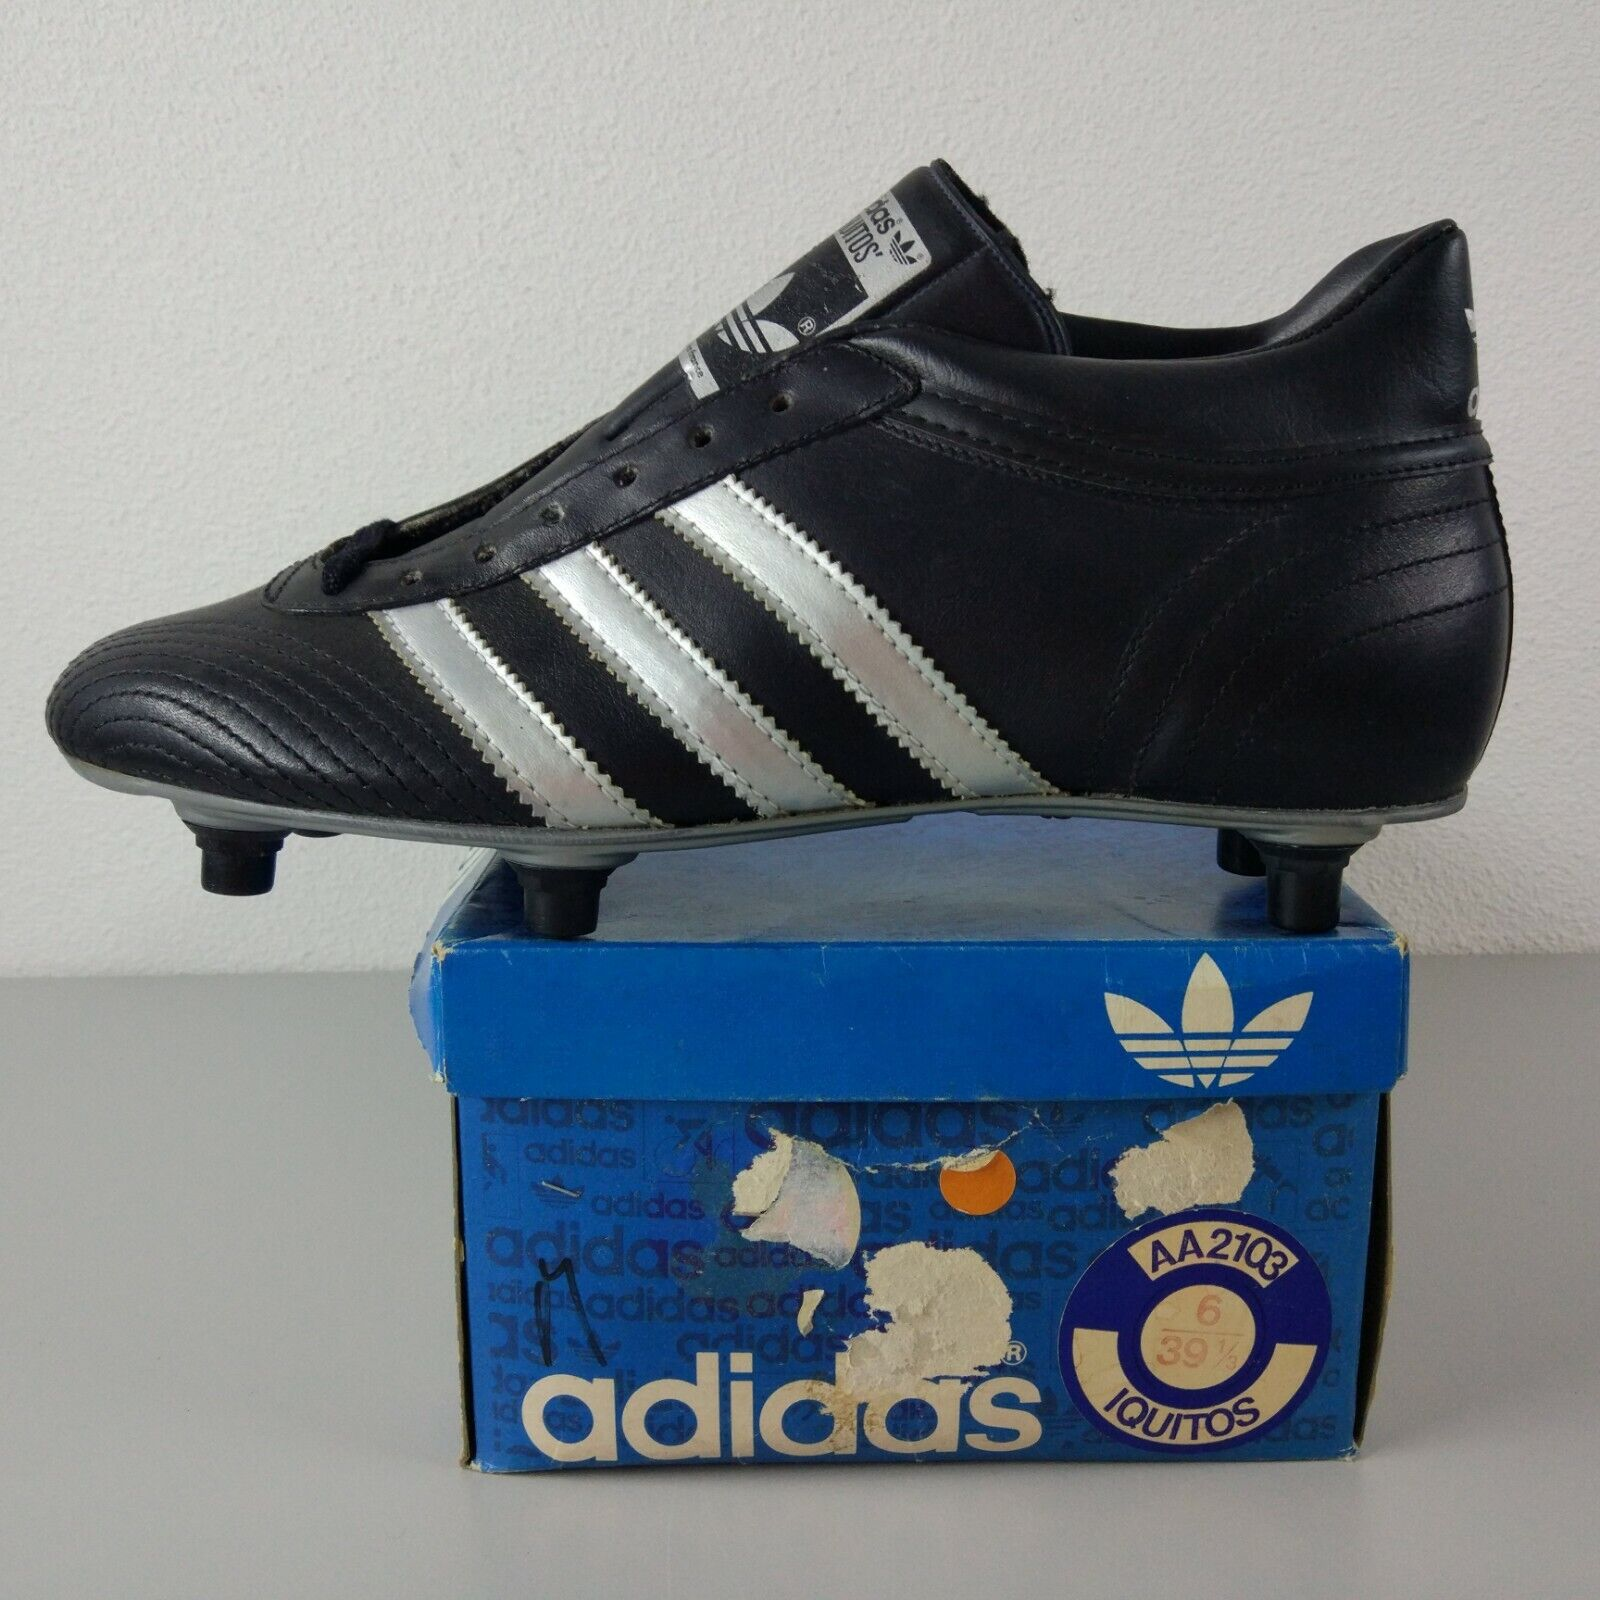 Adidas Iquitos Cleats Made In France 70's Vintage US 6 BNIB Soccer Torsion ZX OG